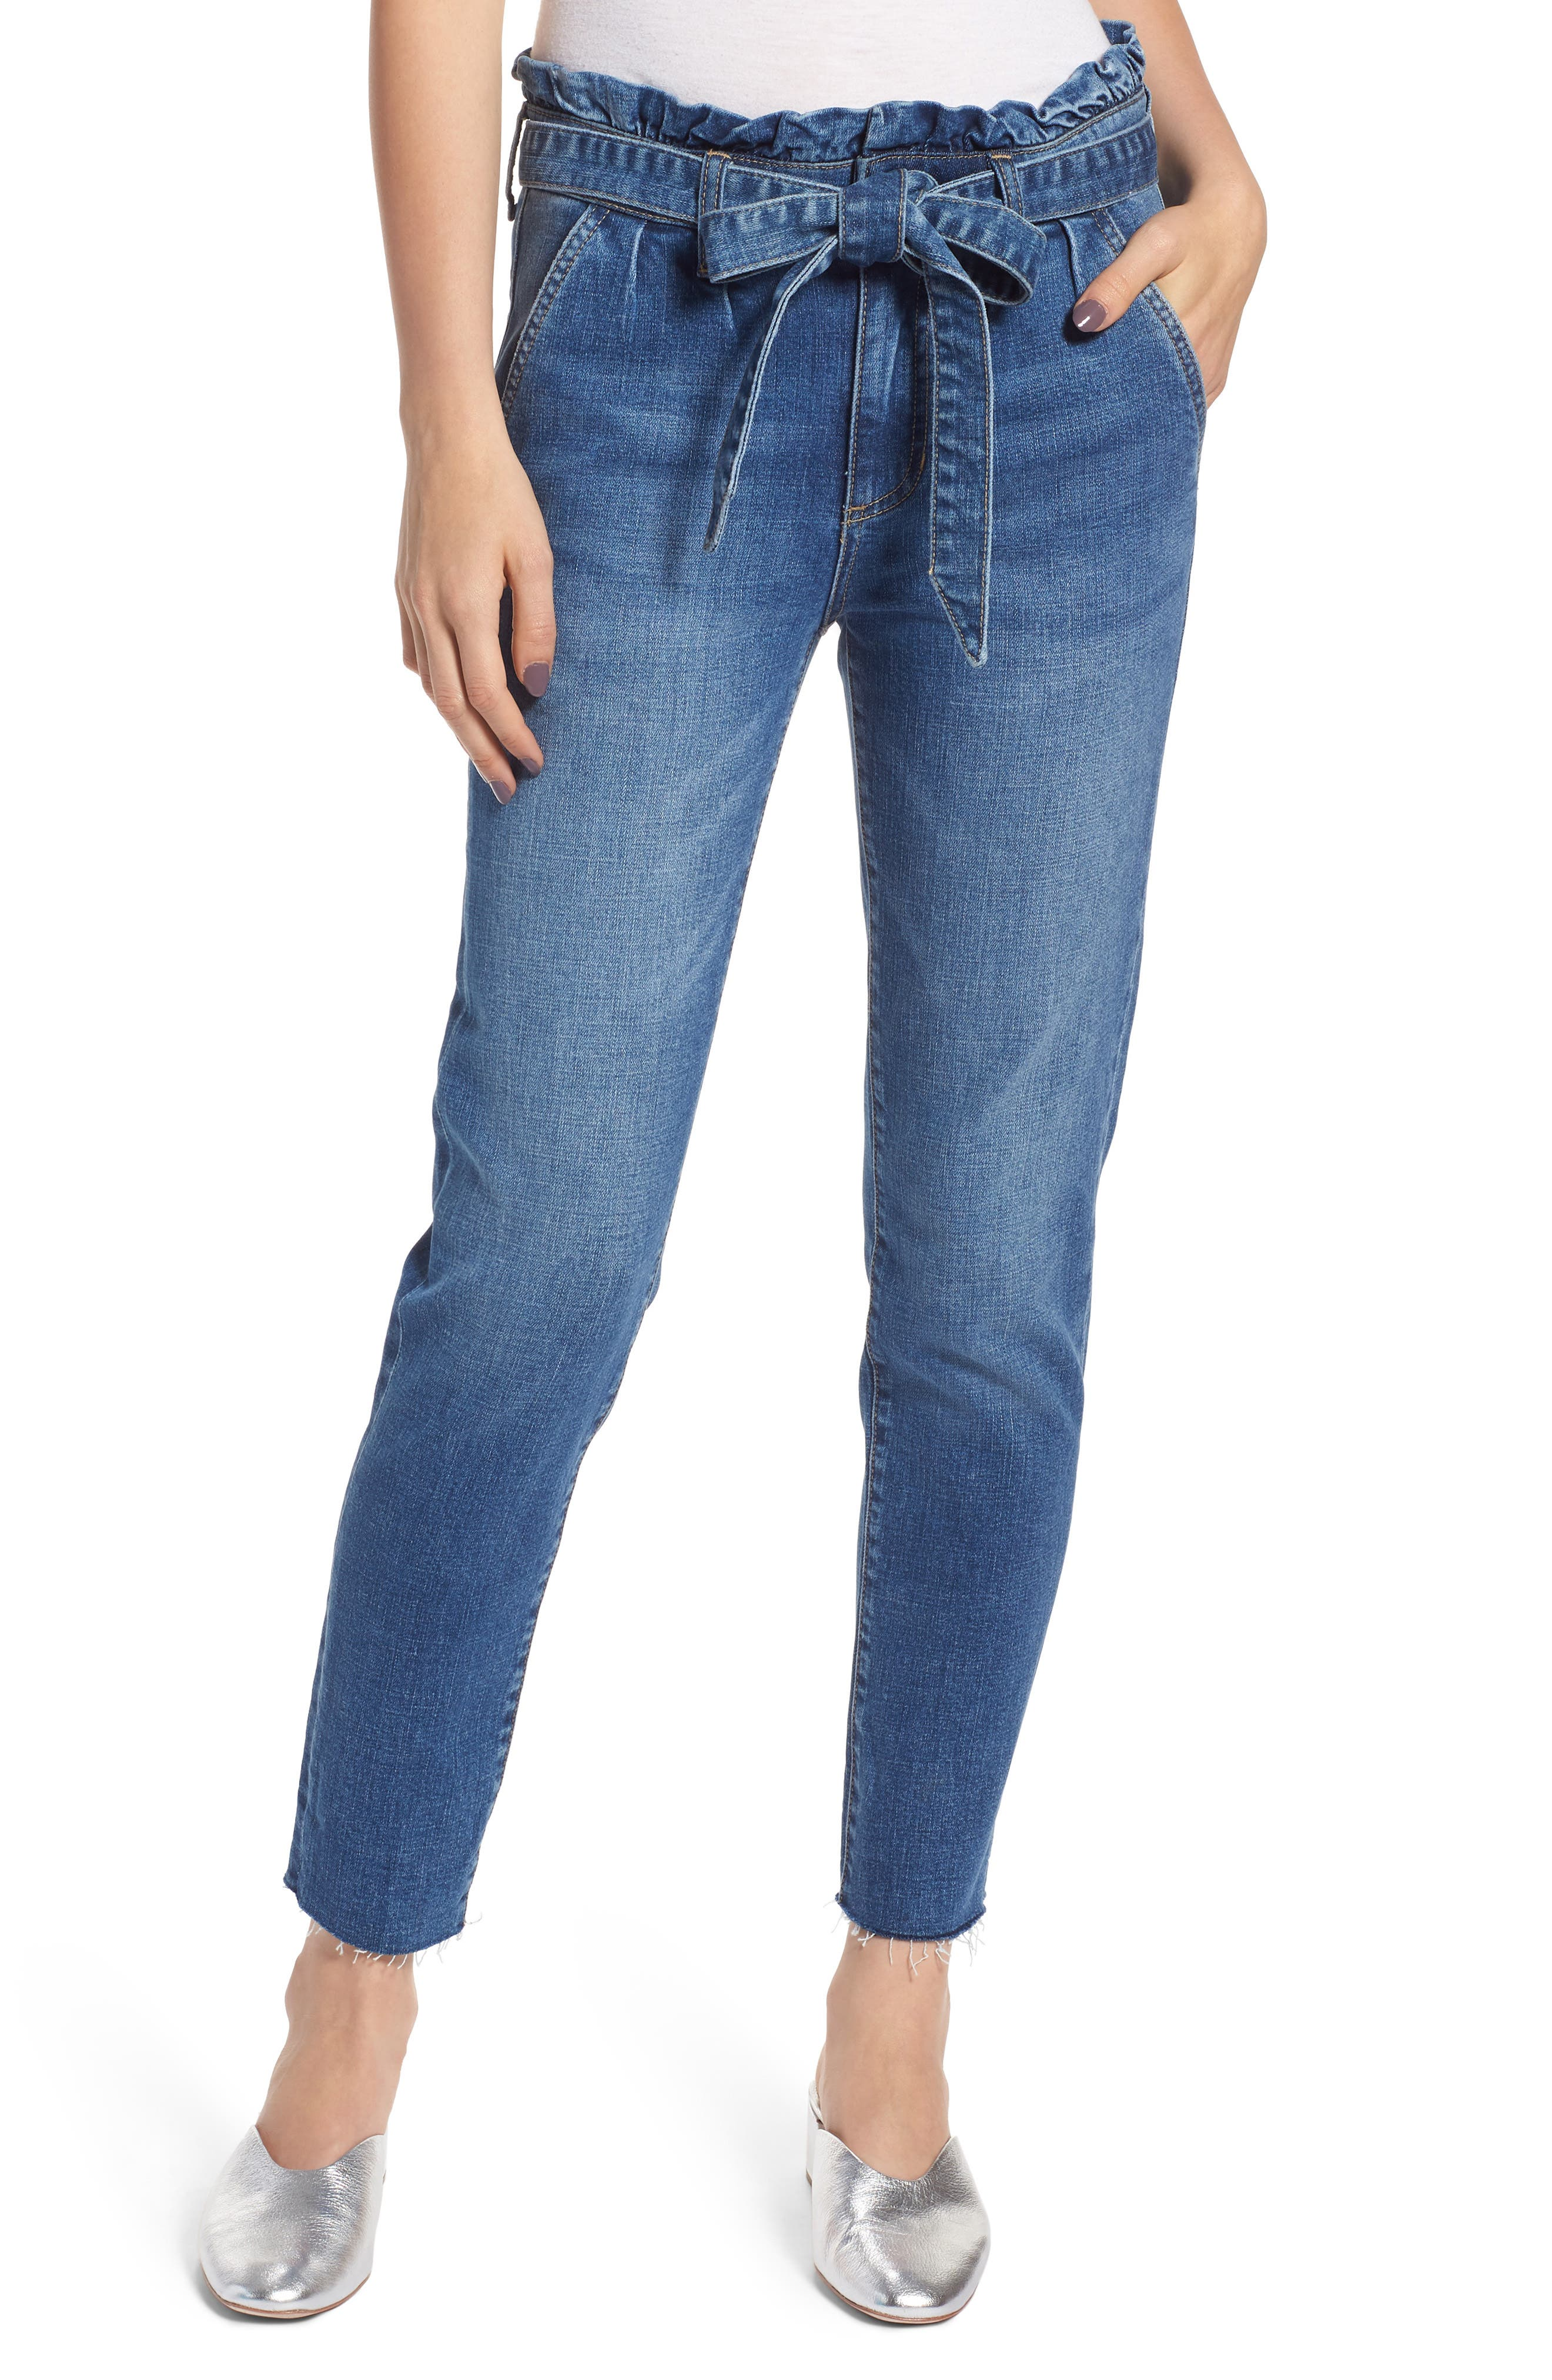 Paperbag Waist Skinny Jeans,                         Main,                         color, Pretty